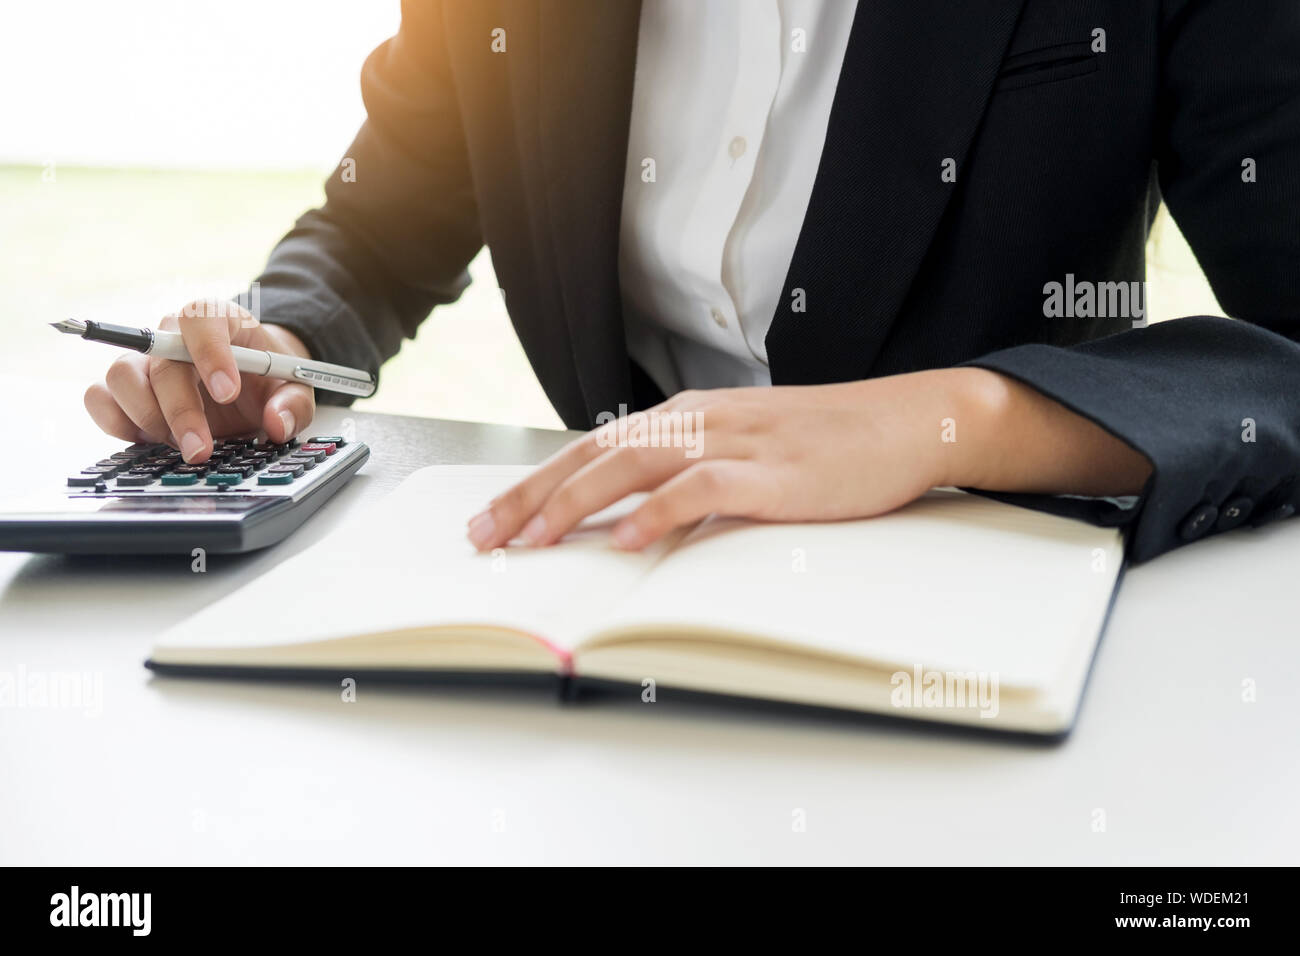 Midsection Of Businesswoman Using Calculator In Office Stock Photo